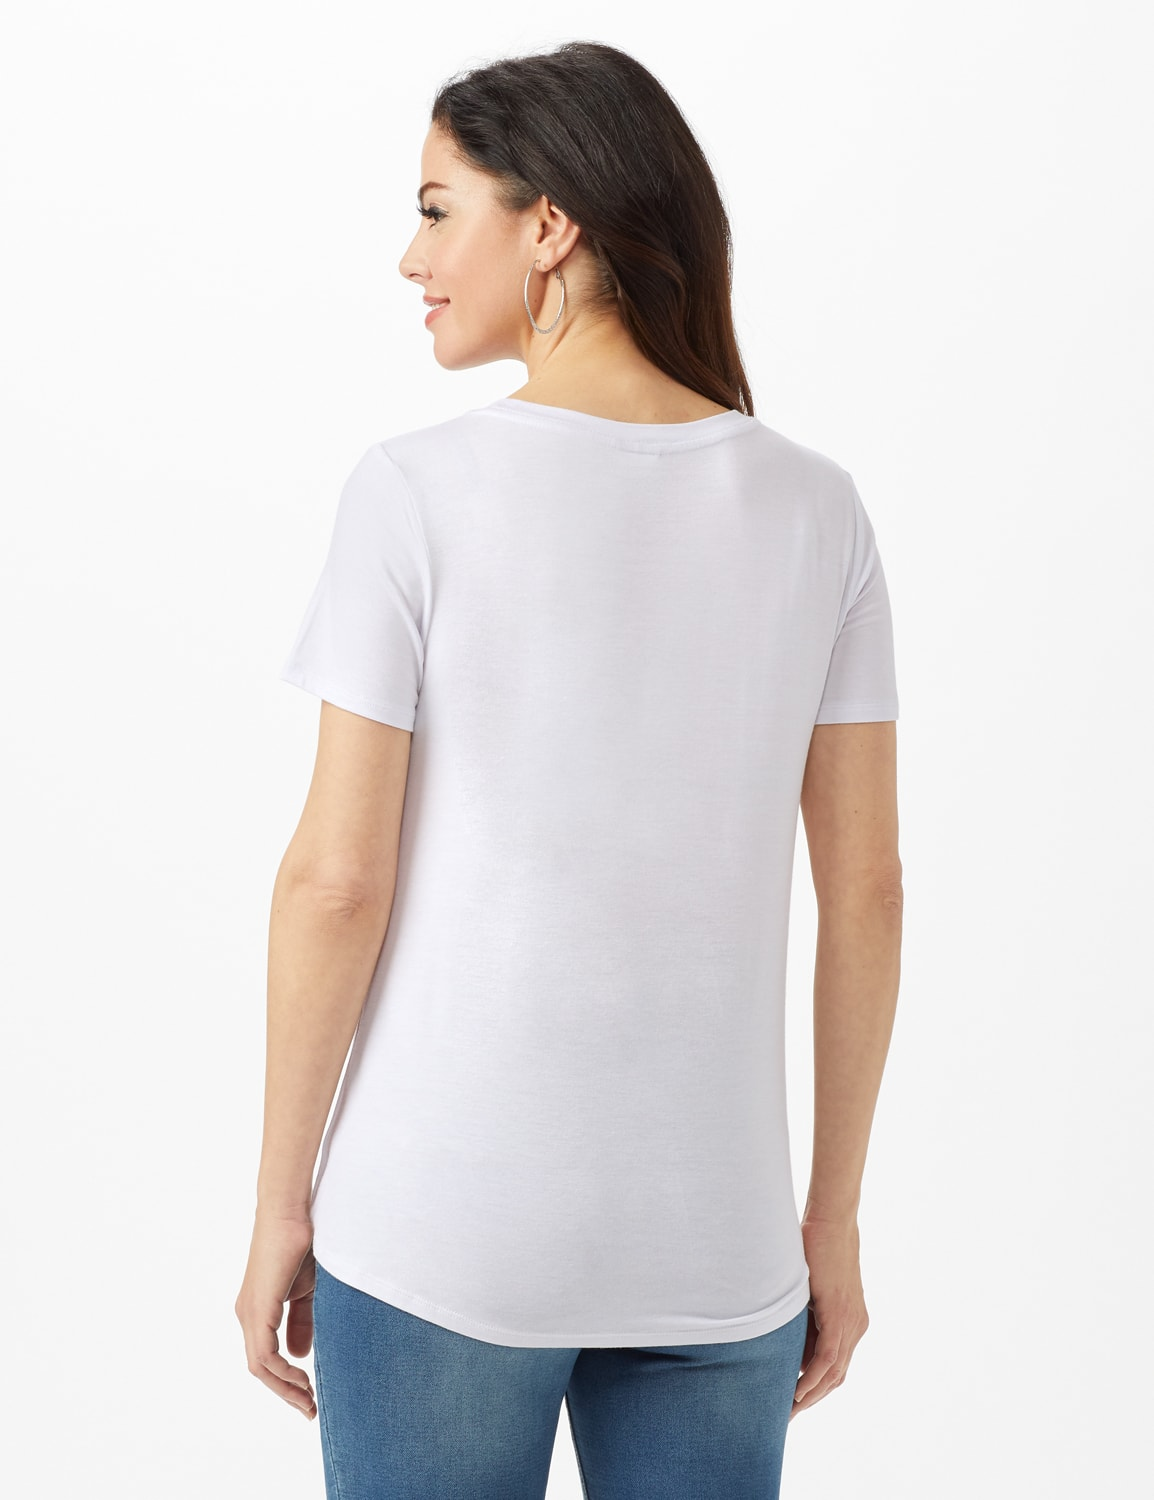 Addicted to Love  Tie Front Screen Tee - White - Back